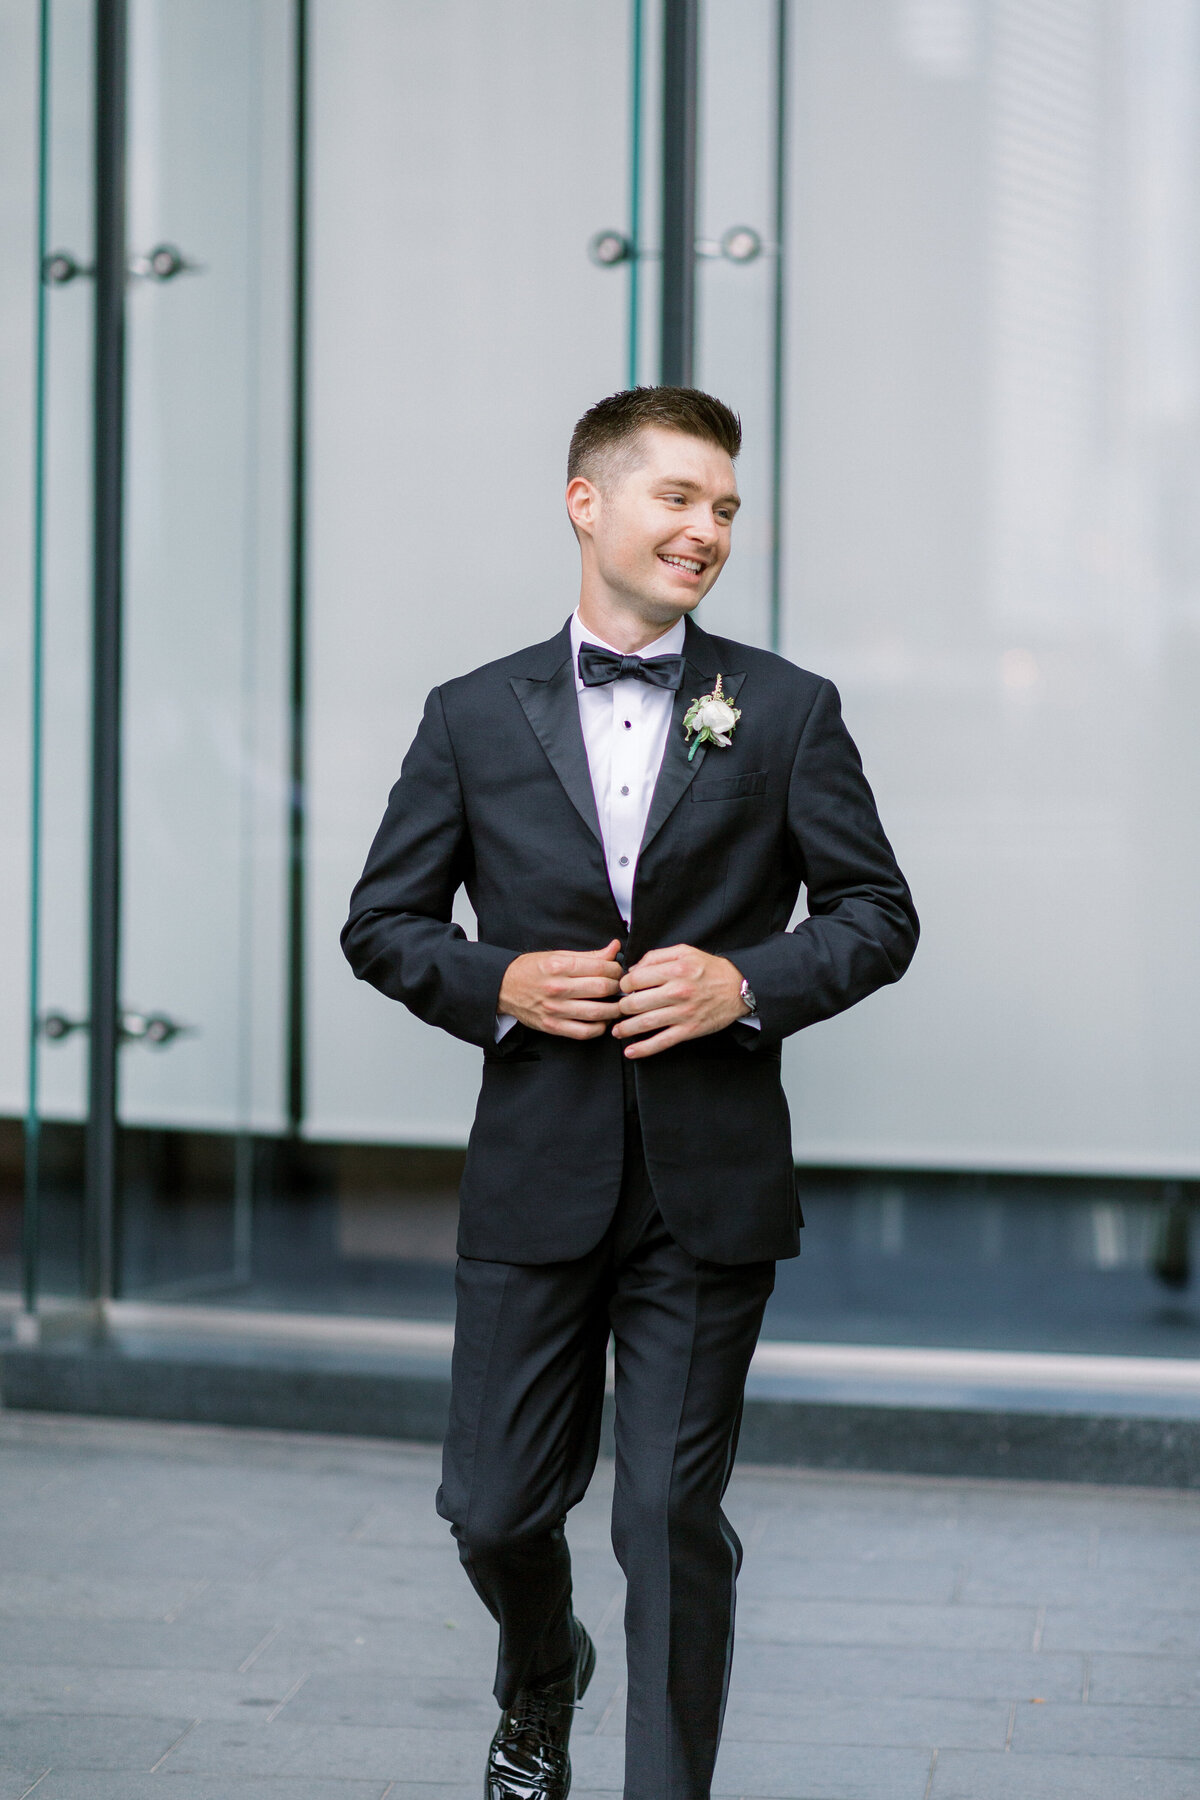 Downtown Chicago Wedding Photographer_Shauna and Jordon Photography020